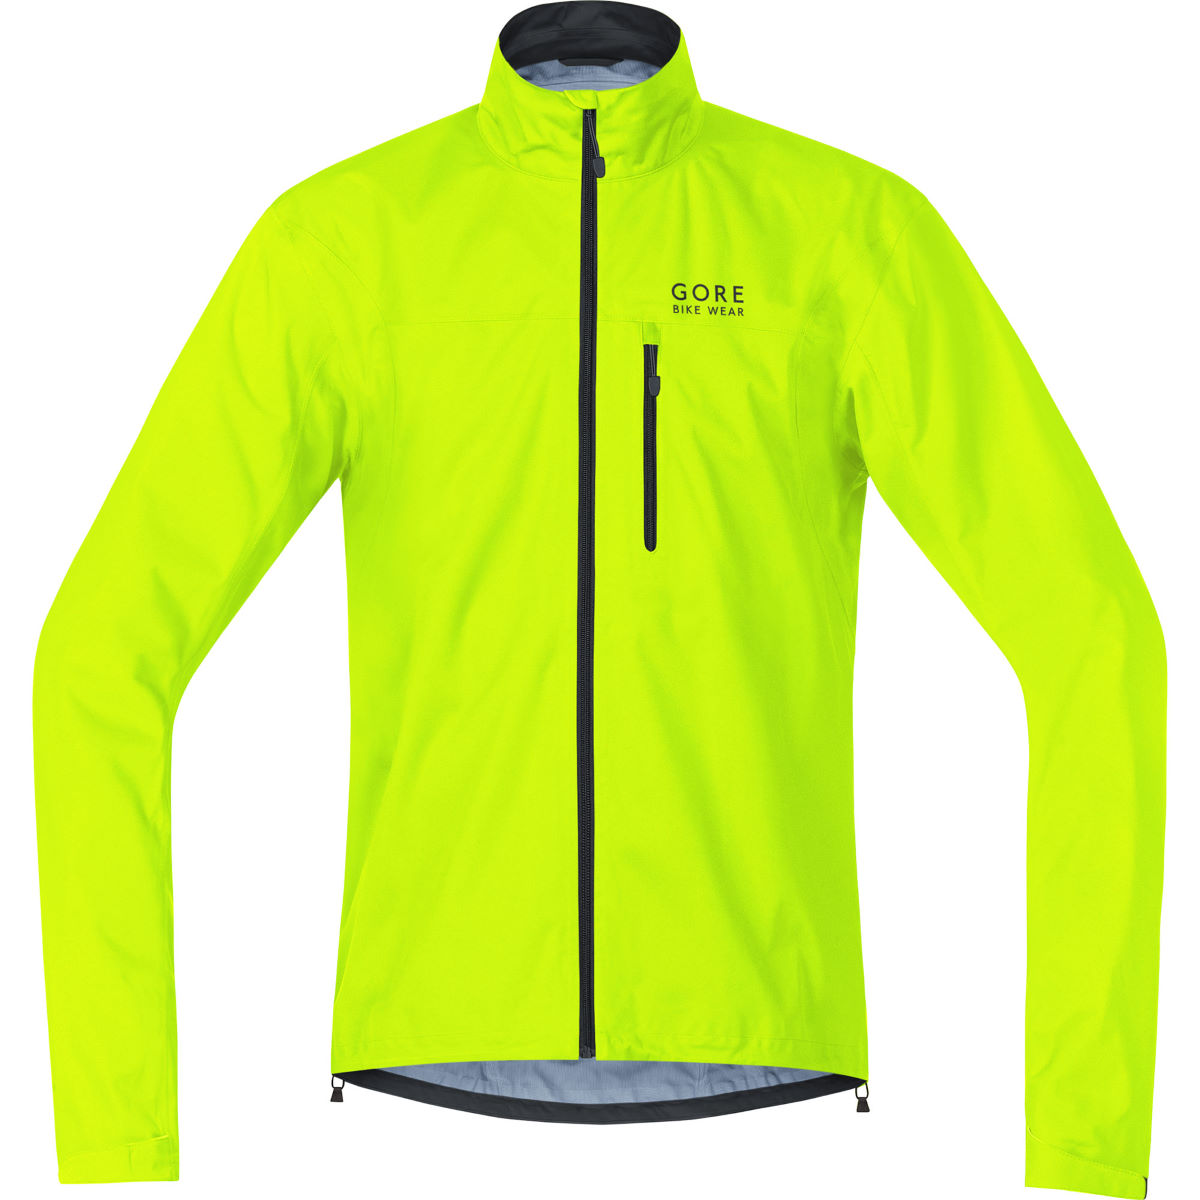 Gore Bike Wear - E Gore-Tex Jacket - S Neon Yellow